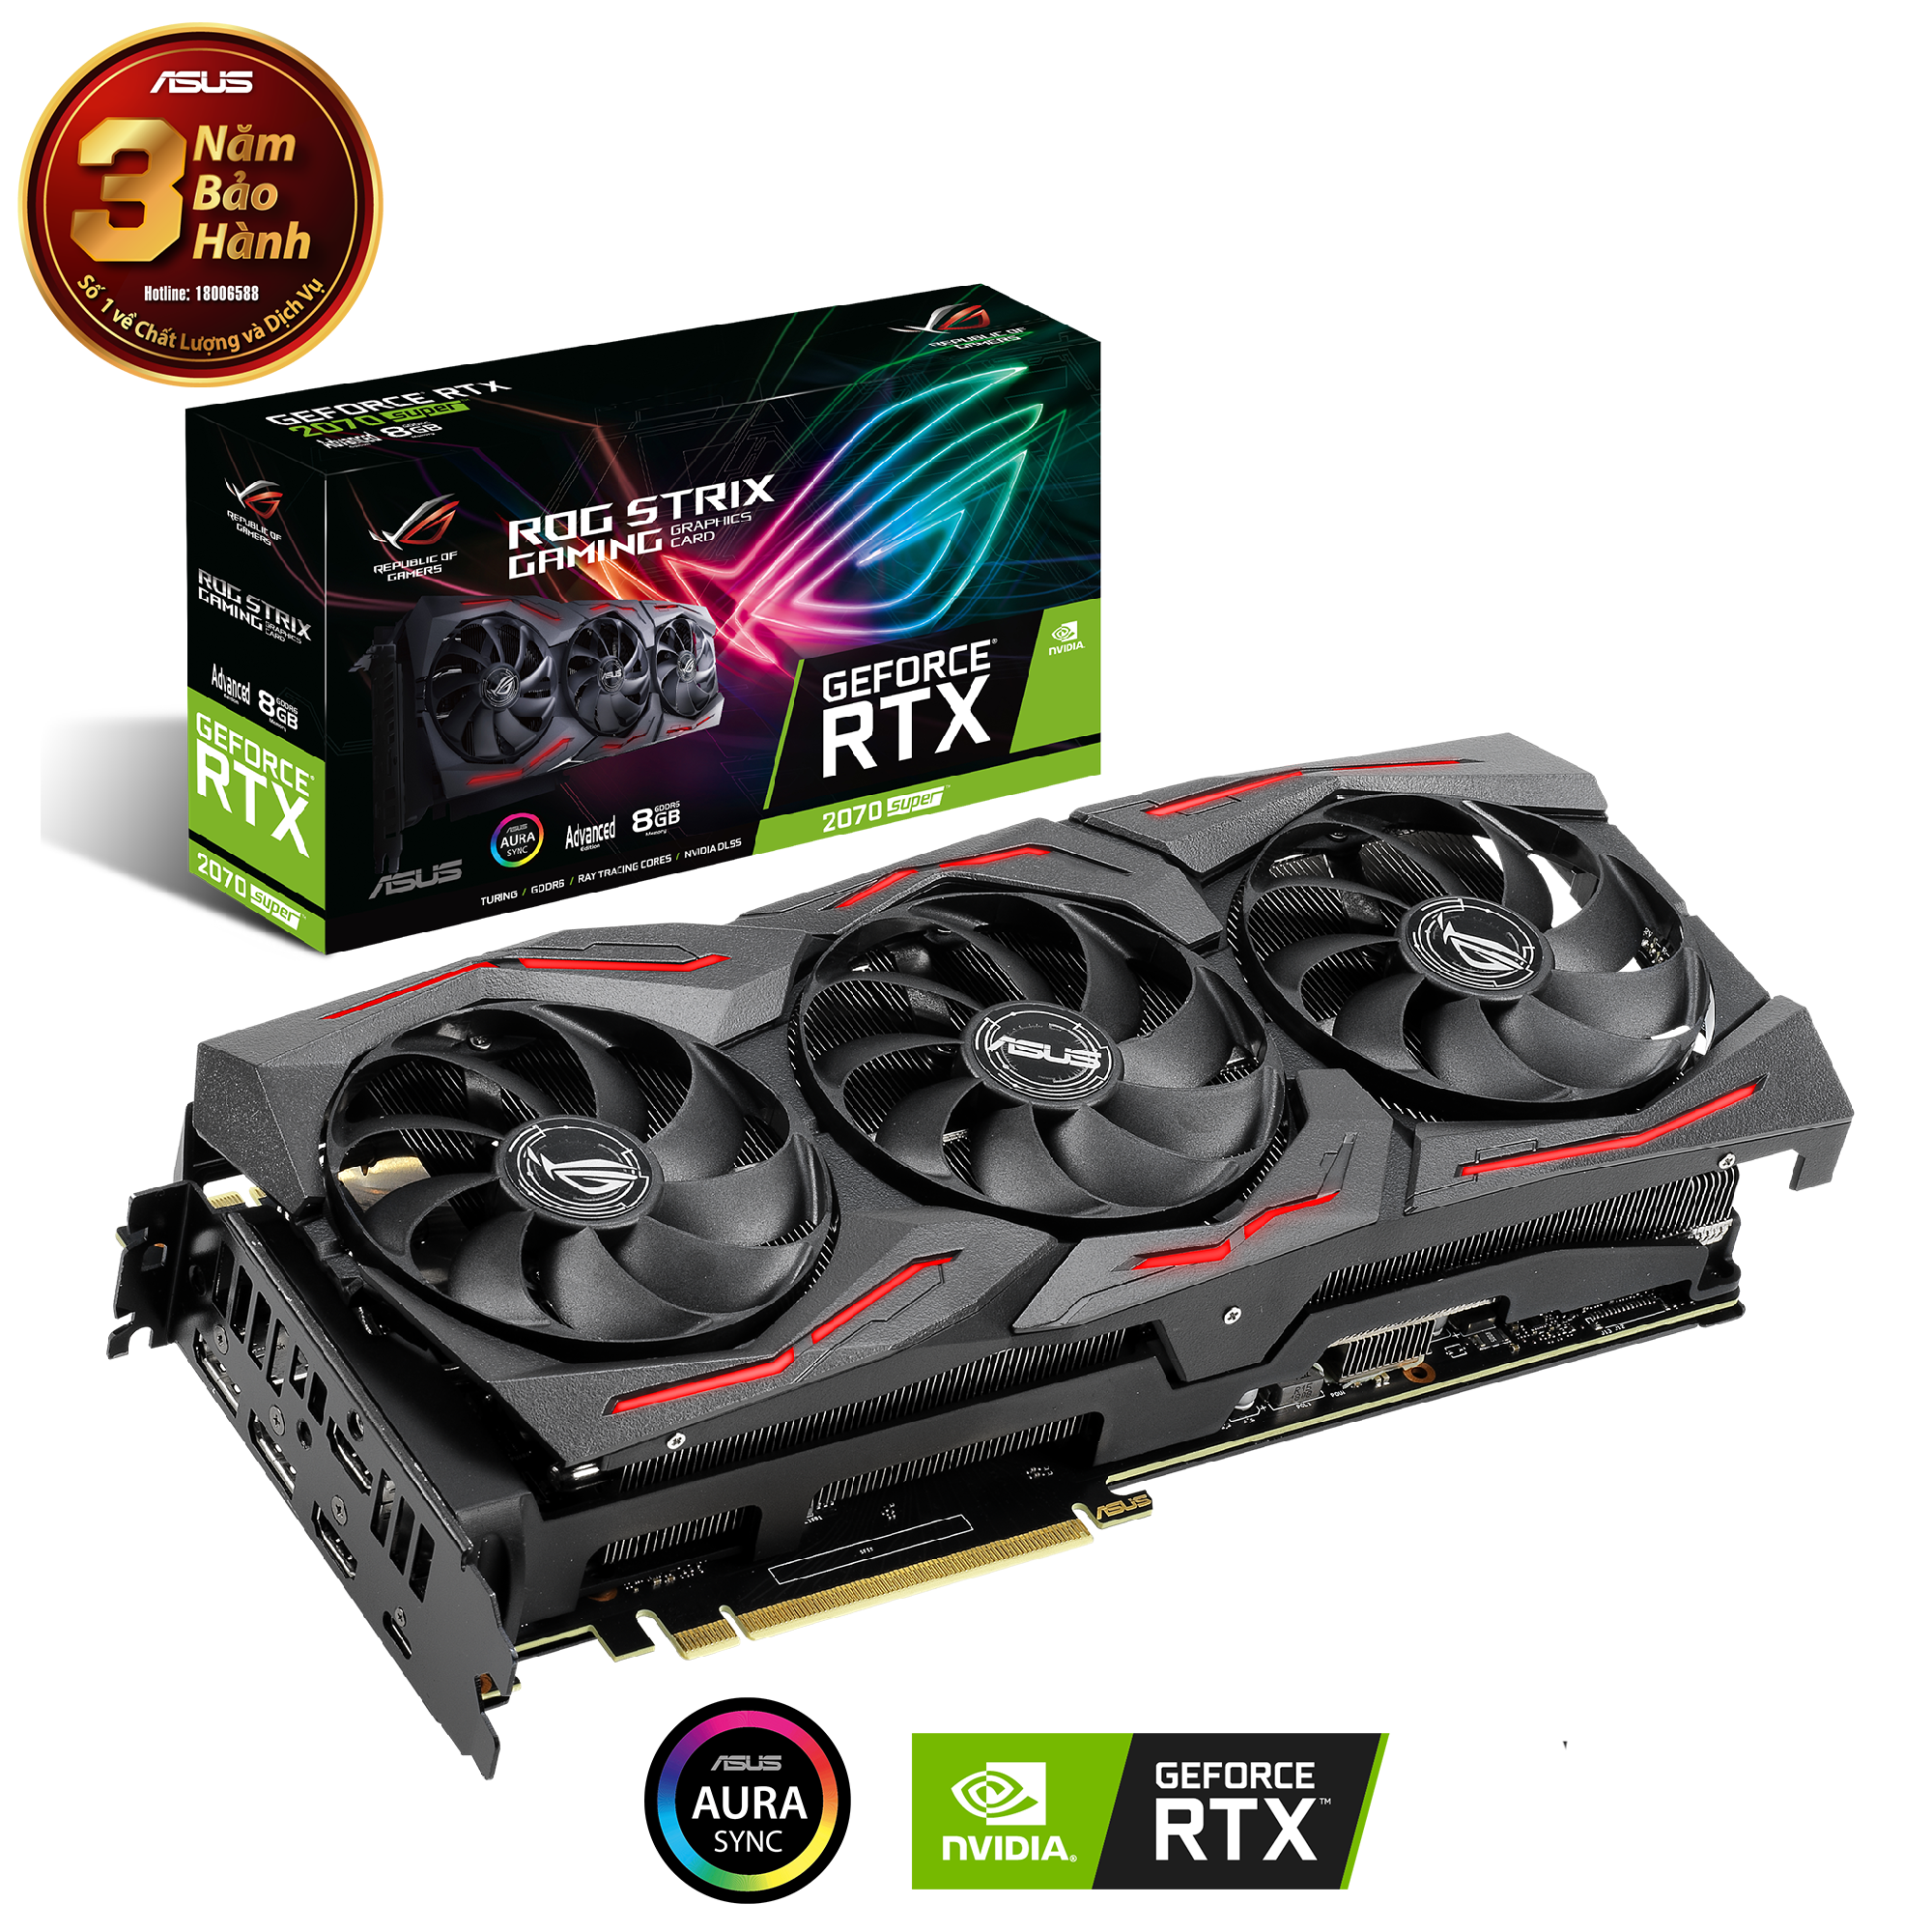 VGA ASUS ROG Strix  RTX 2070 SUPER 8GB GDDR6 (ROG-STRIX-RTX2070S-A8G-GAMING)